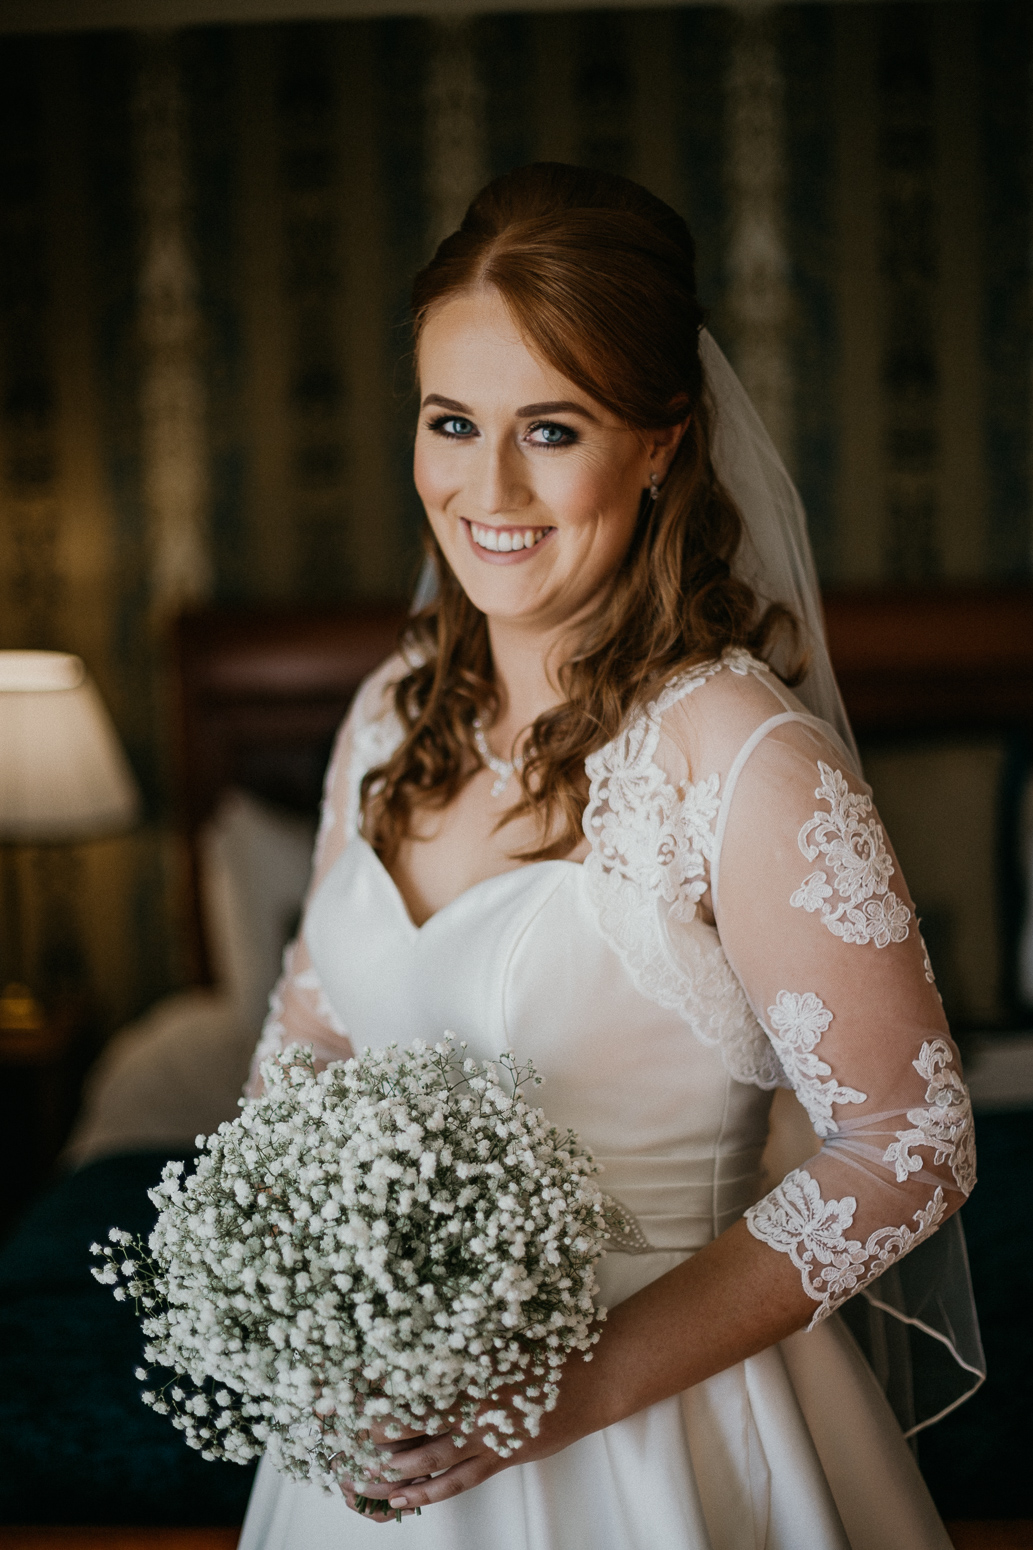 Knightsbrook Hotel Wedding, November 2019, Darren Byrne Photography & Film